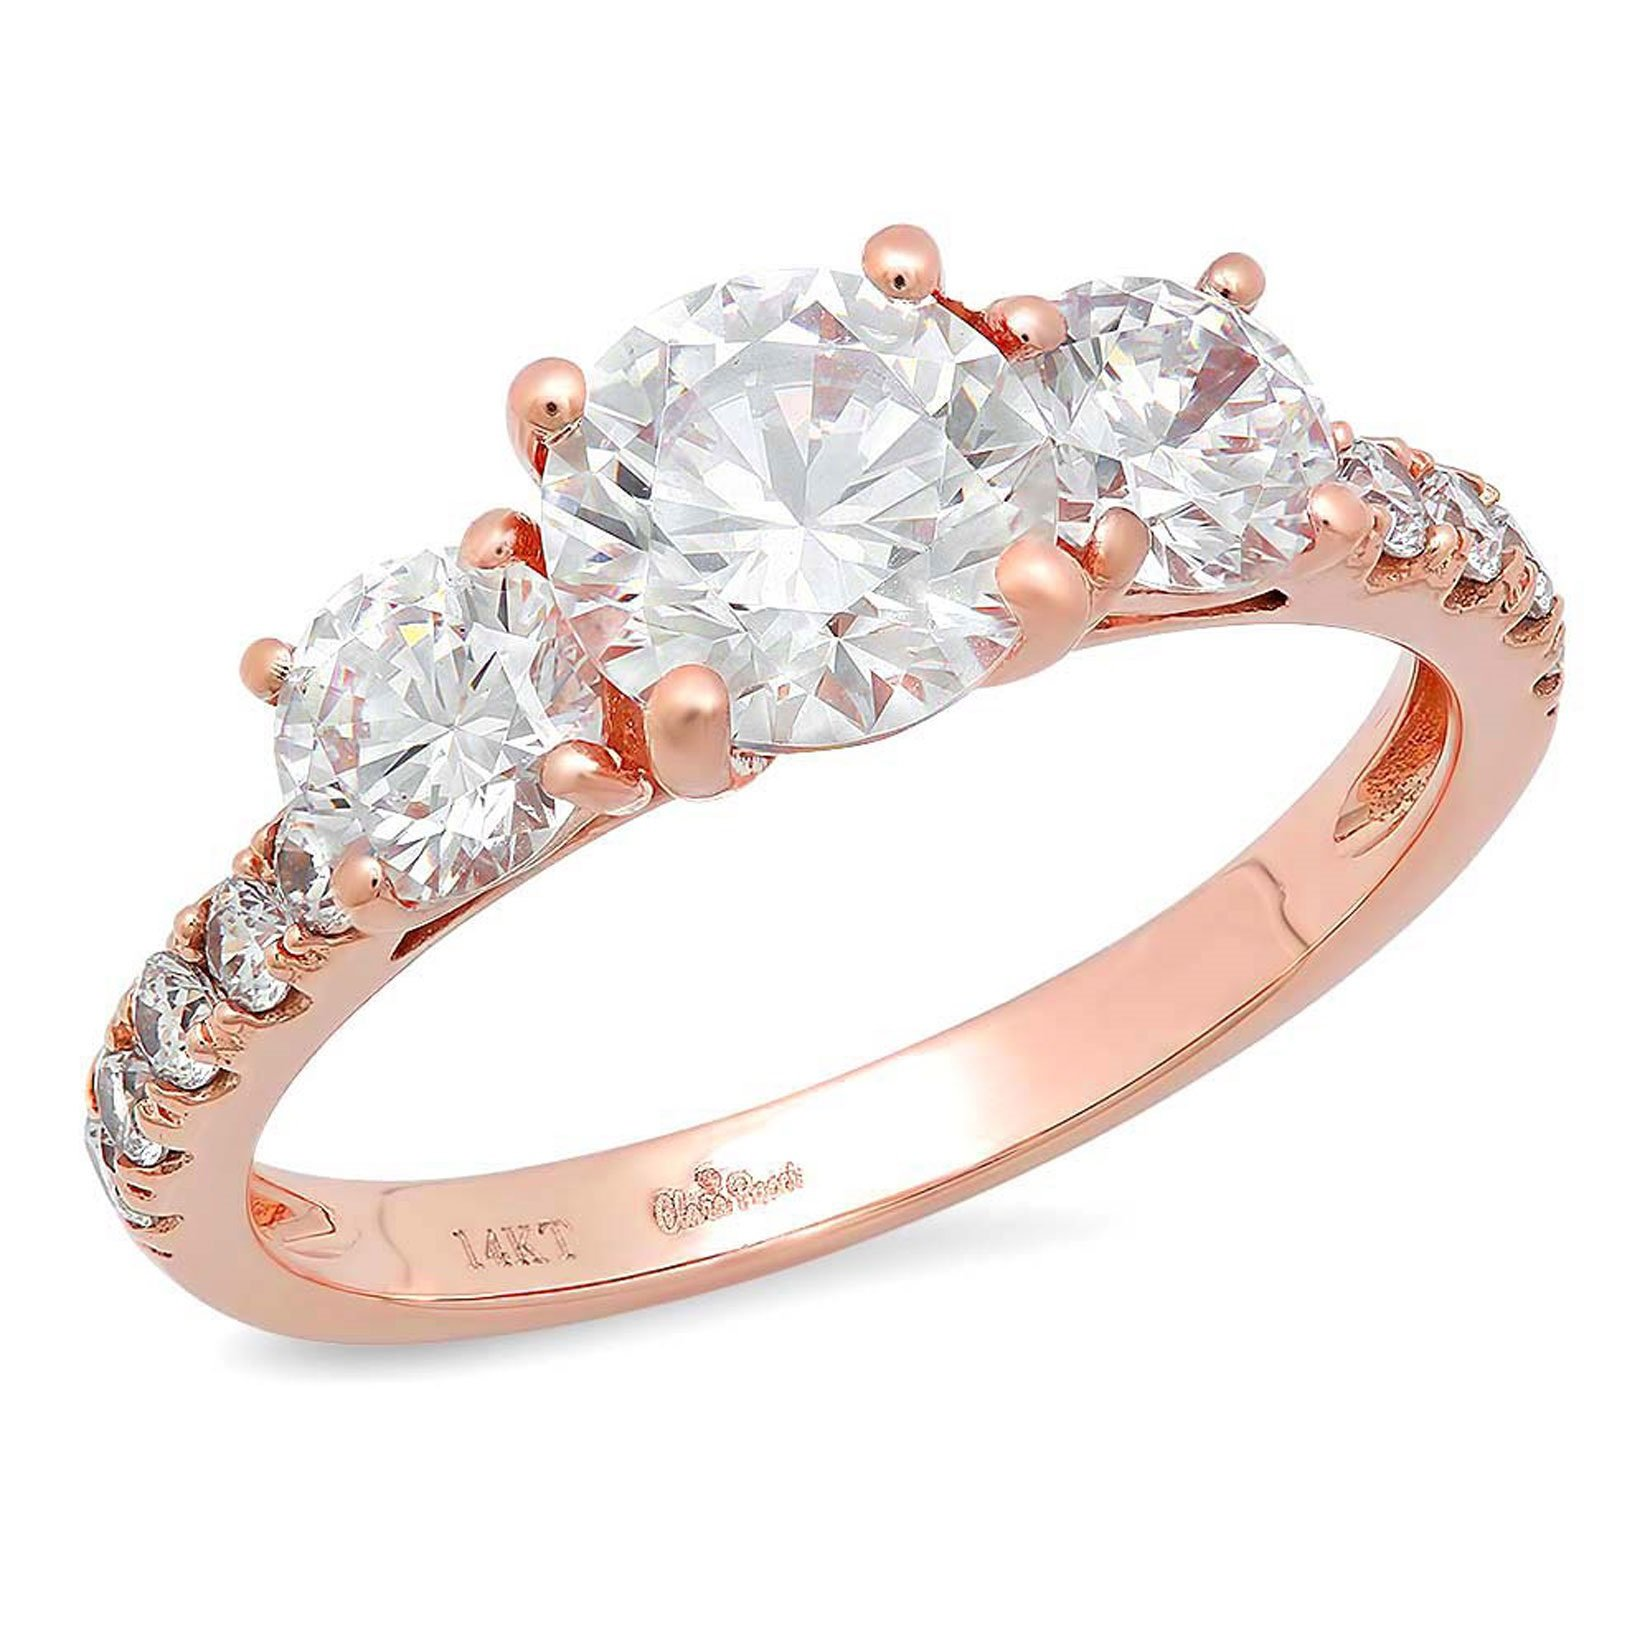 Clara Pucci 1.9 CT Round Cut Pave Three Stone Accent Bridal Engagement Wedding Band Ring 14K Rose Gold, Size 9